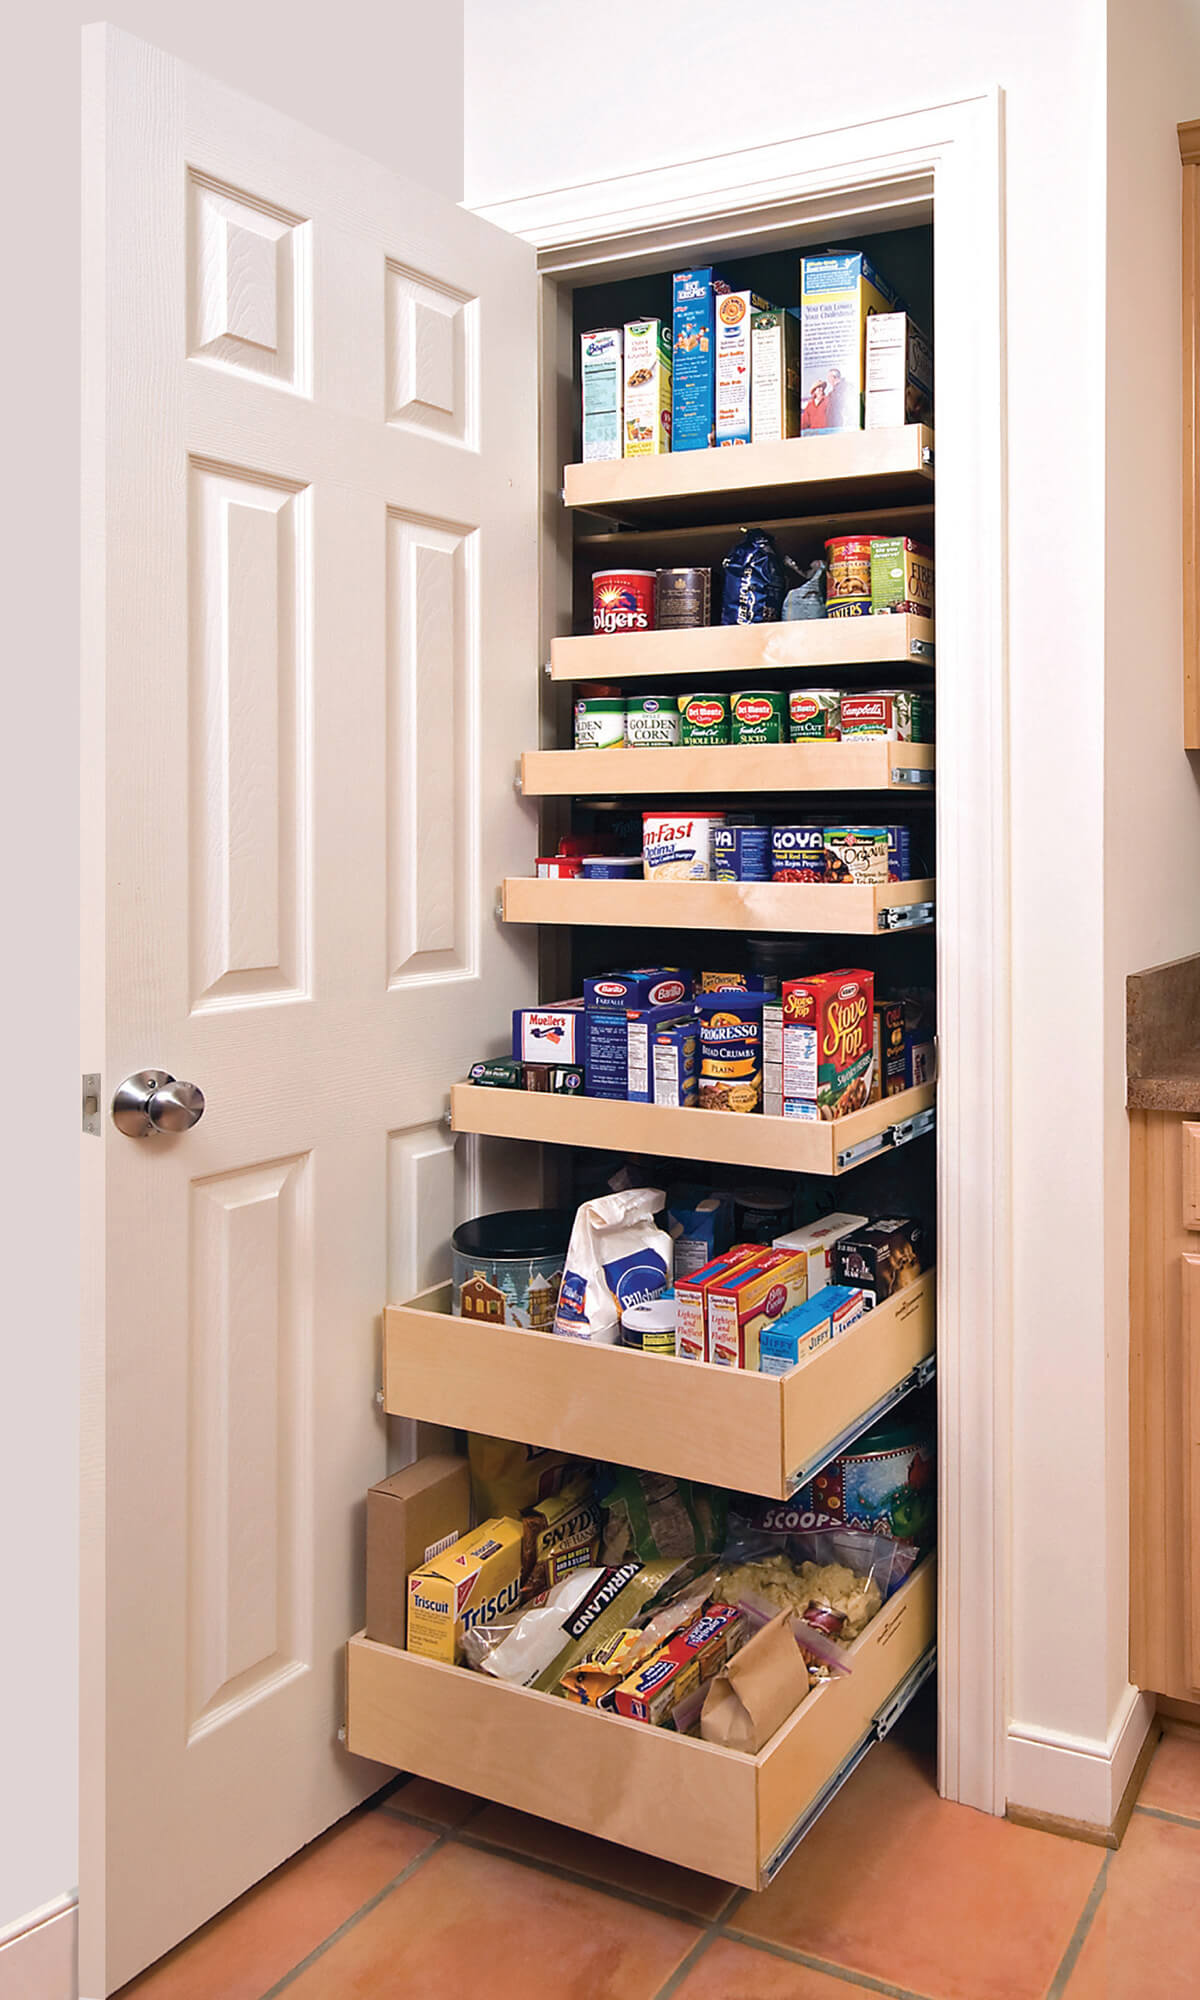 Graduated Sliding Drawers in the Pantry